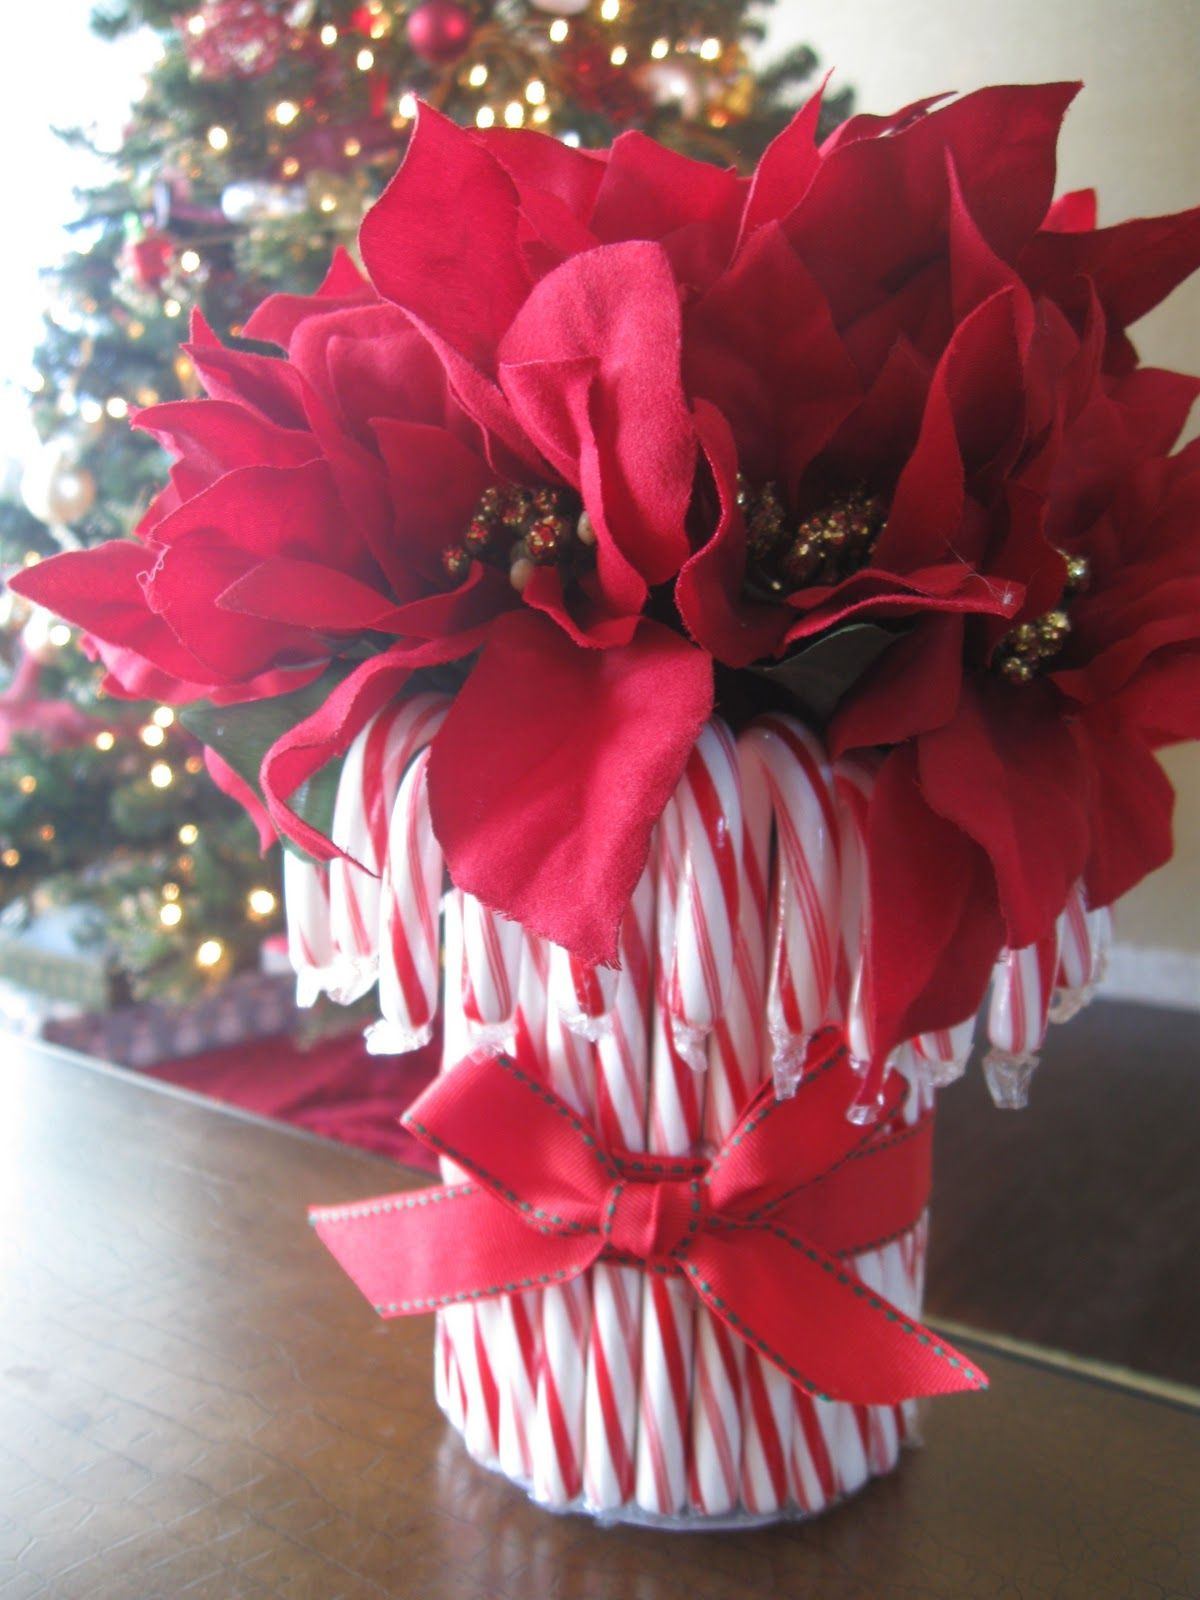 Diy candy cane vase frugal living candy canes and frugal for our christmas party last year i bought several christmasy flower arrangements carefully arranged them in vases and placed them around the house solutioingenieria Gallery